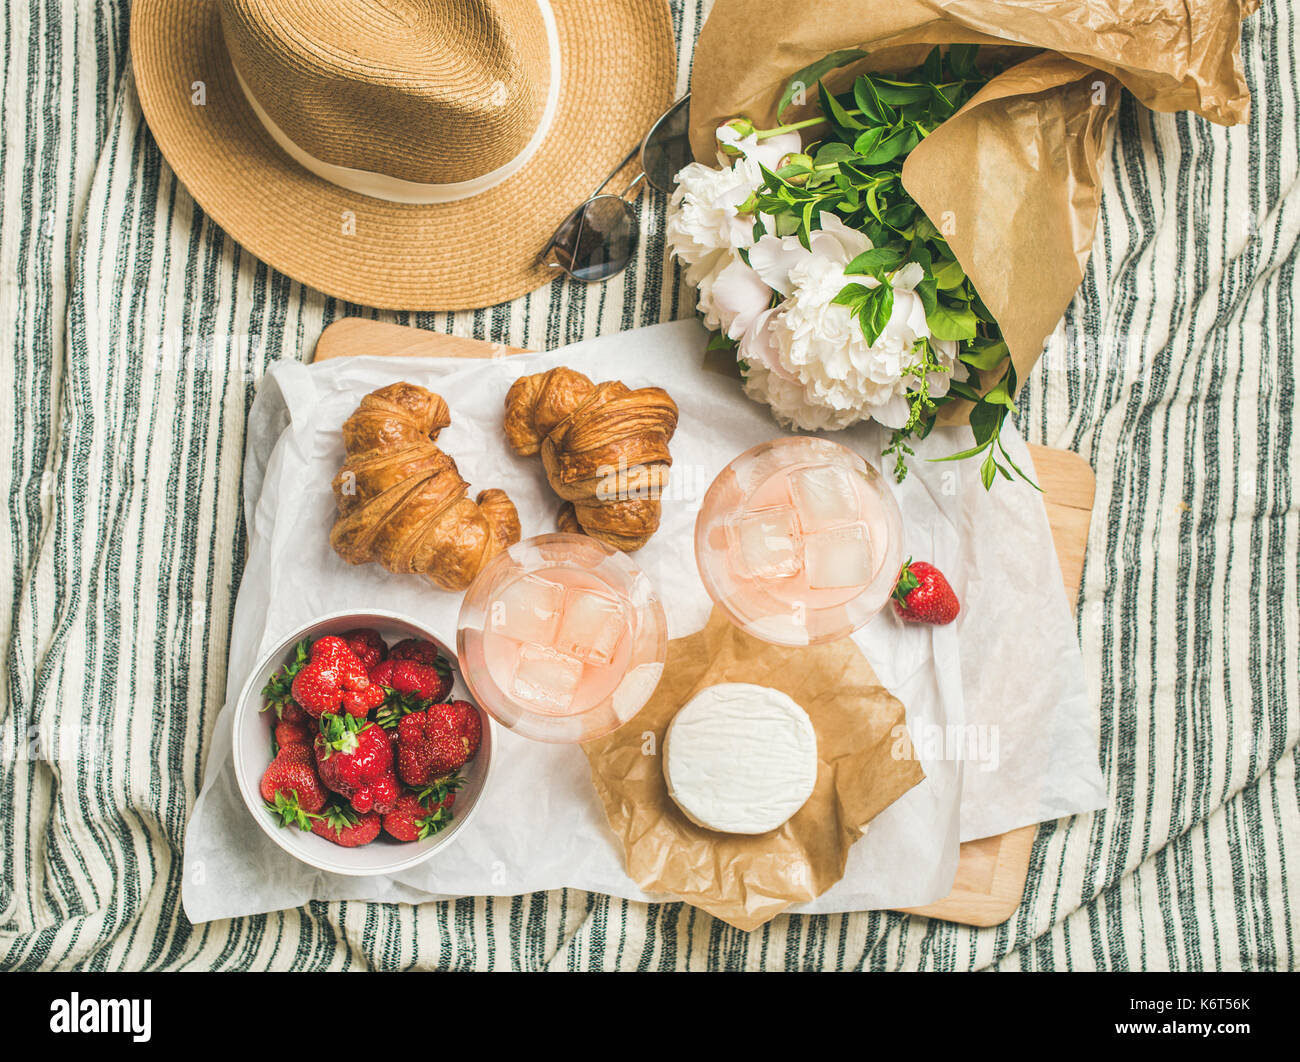 Flat-lay of glasses of rose wine, strawberries, croissants, brie cheese - Stock Image